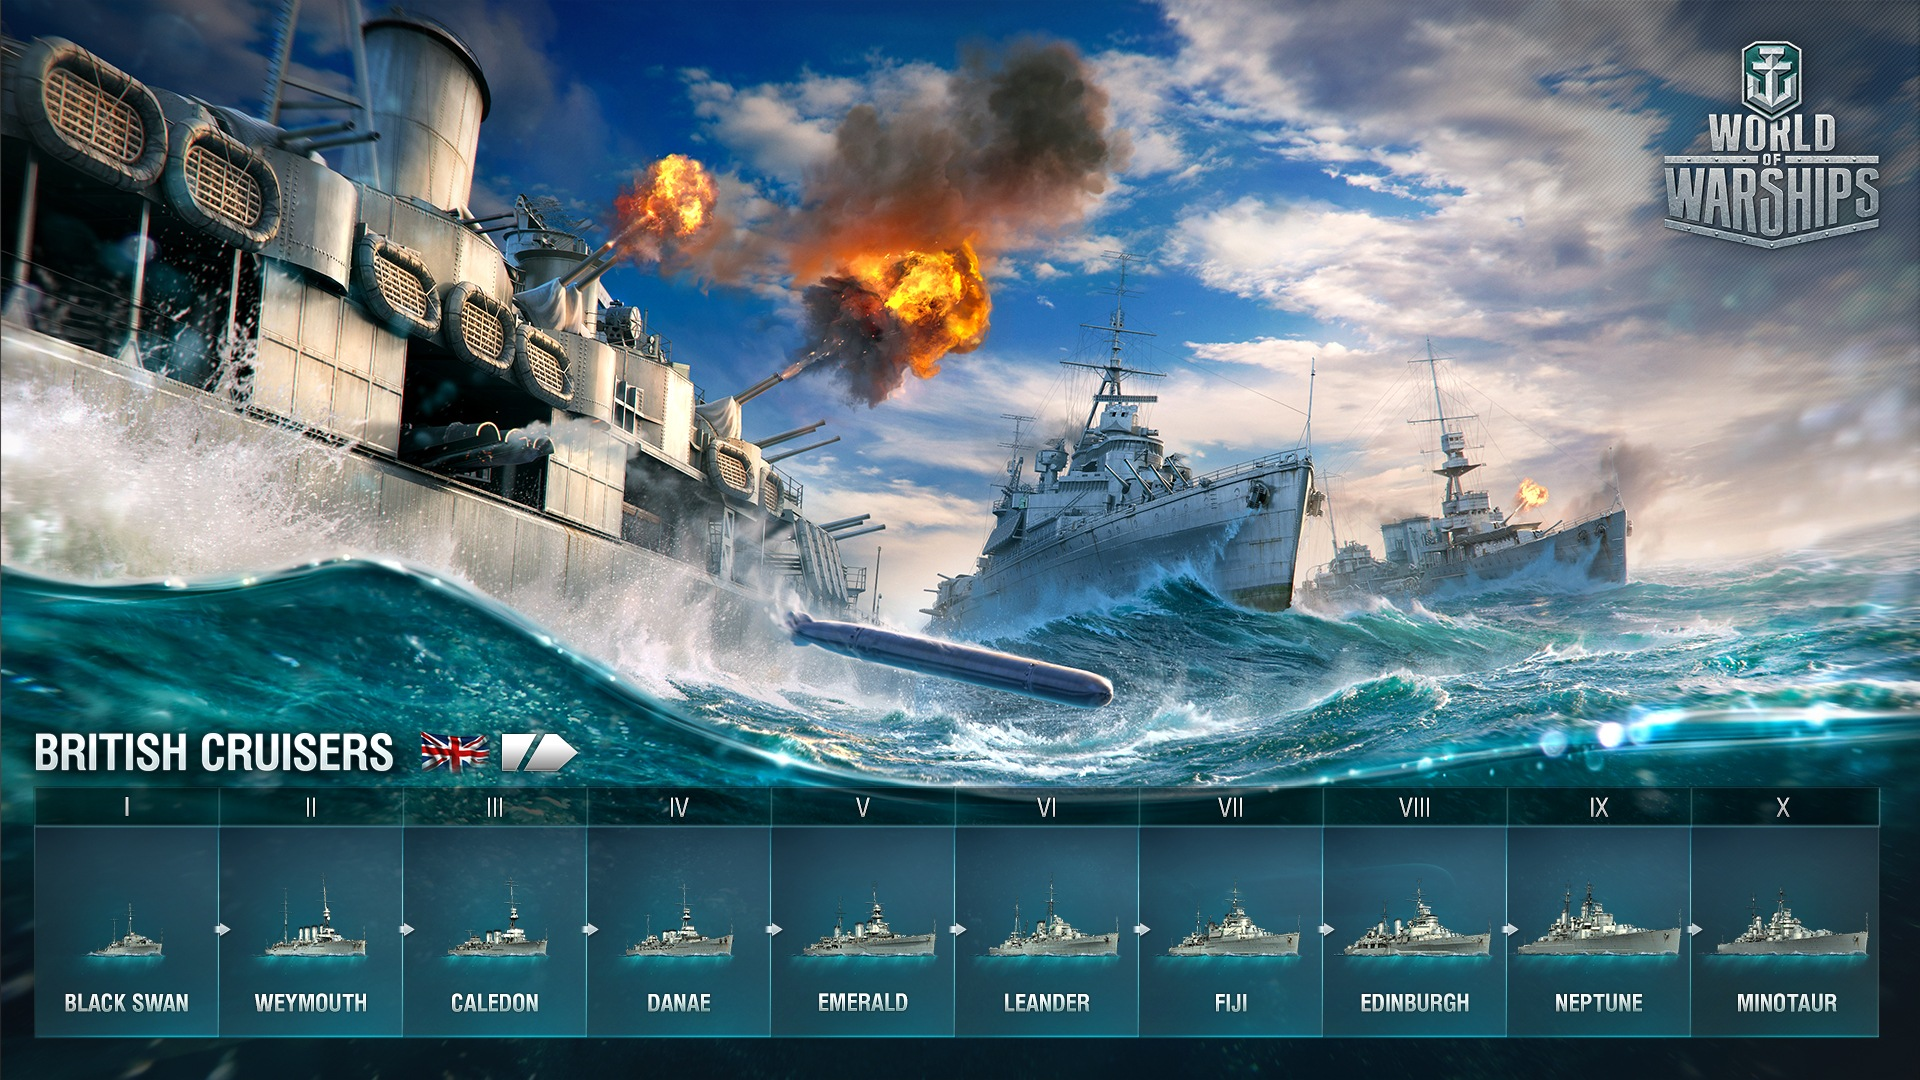 Screenshot of British Cruisers in World of Warships